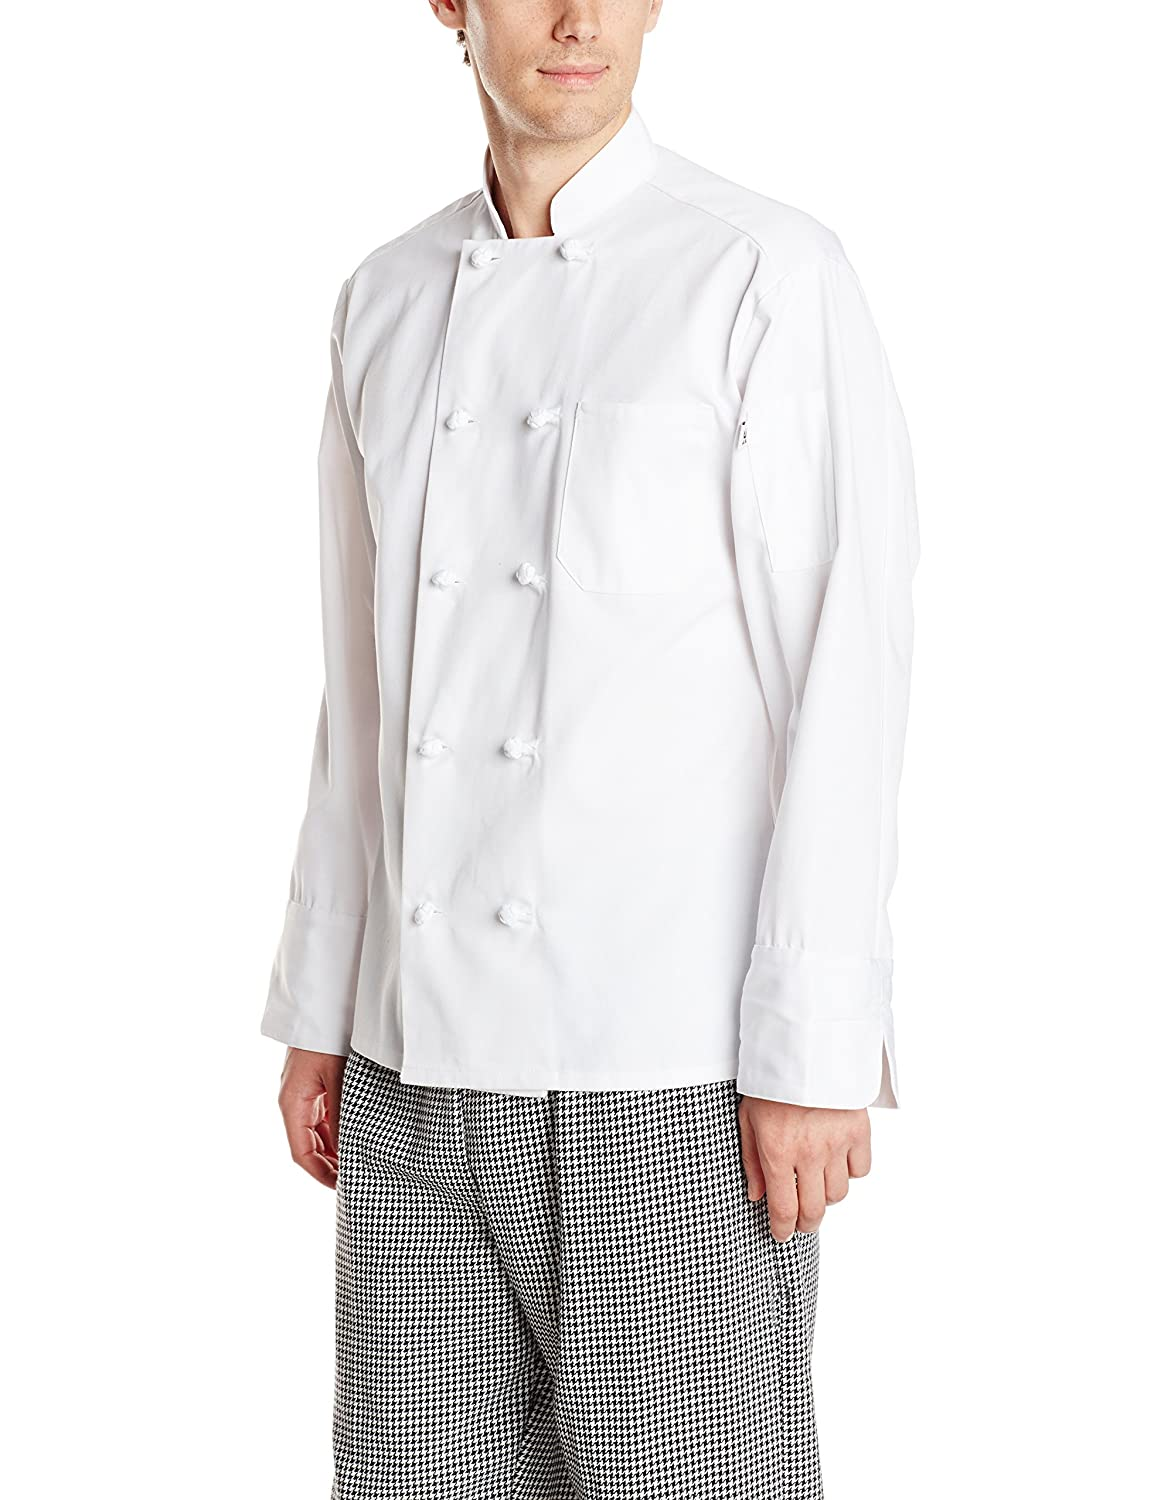 Uncommon Threads Unisex Classic Knot Button Chef Coat 403